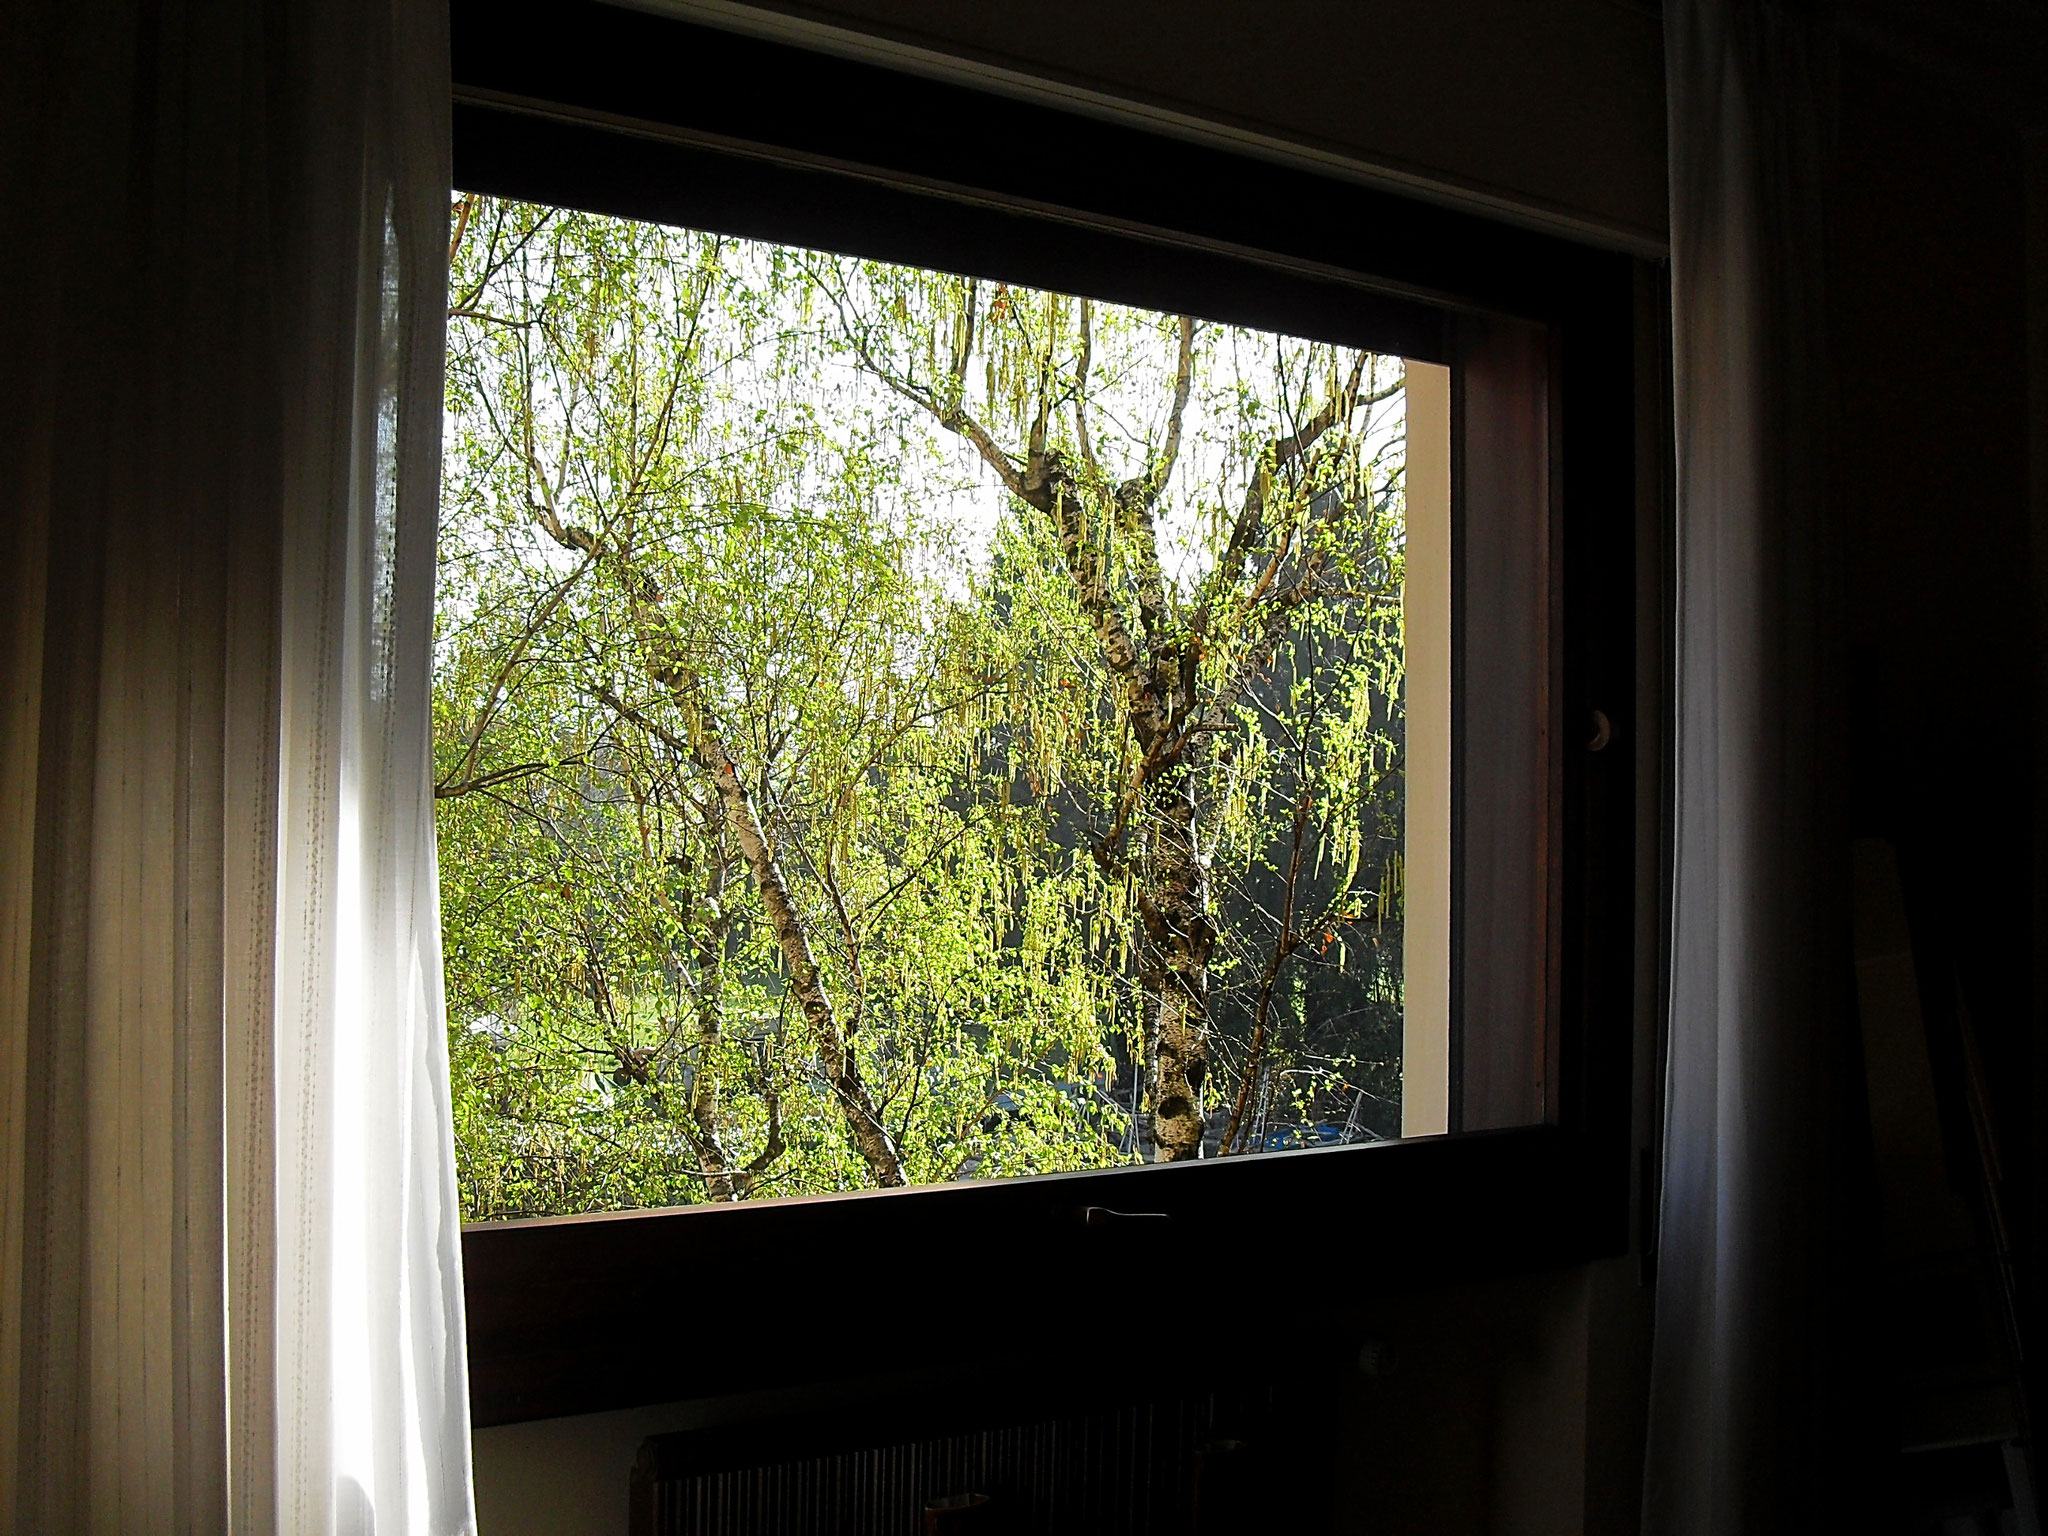 Bedroom. In the morning it's nice to wake up to the birdsong!